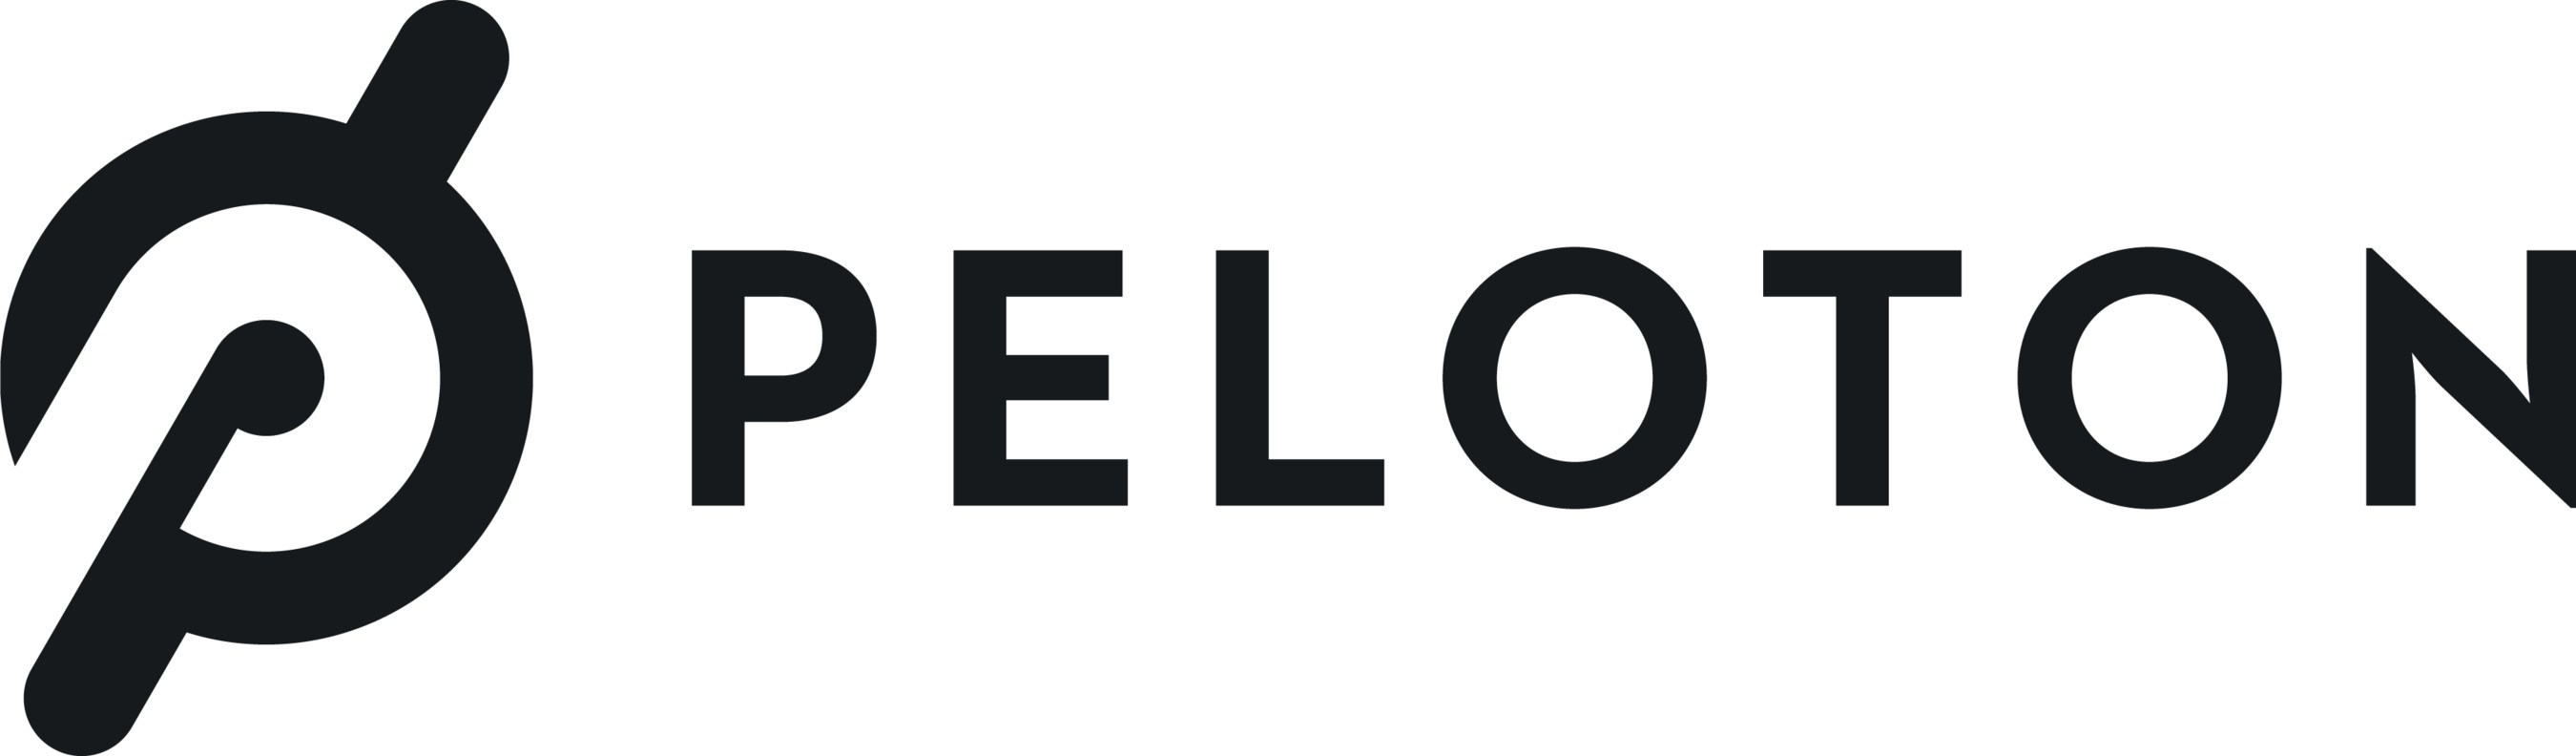 Peloton's sprint into the future in times of COVID - Digital Innovation and  Transformation